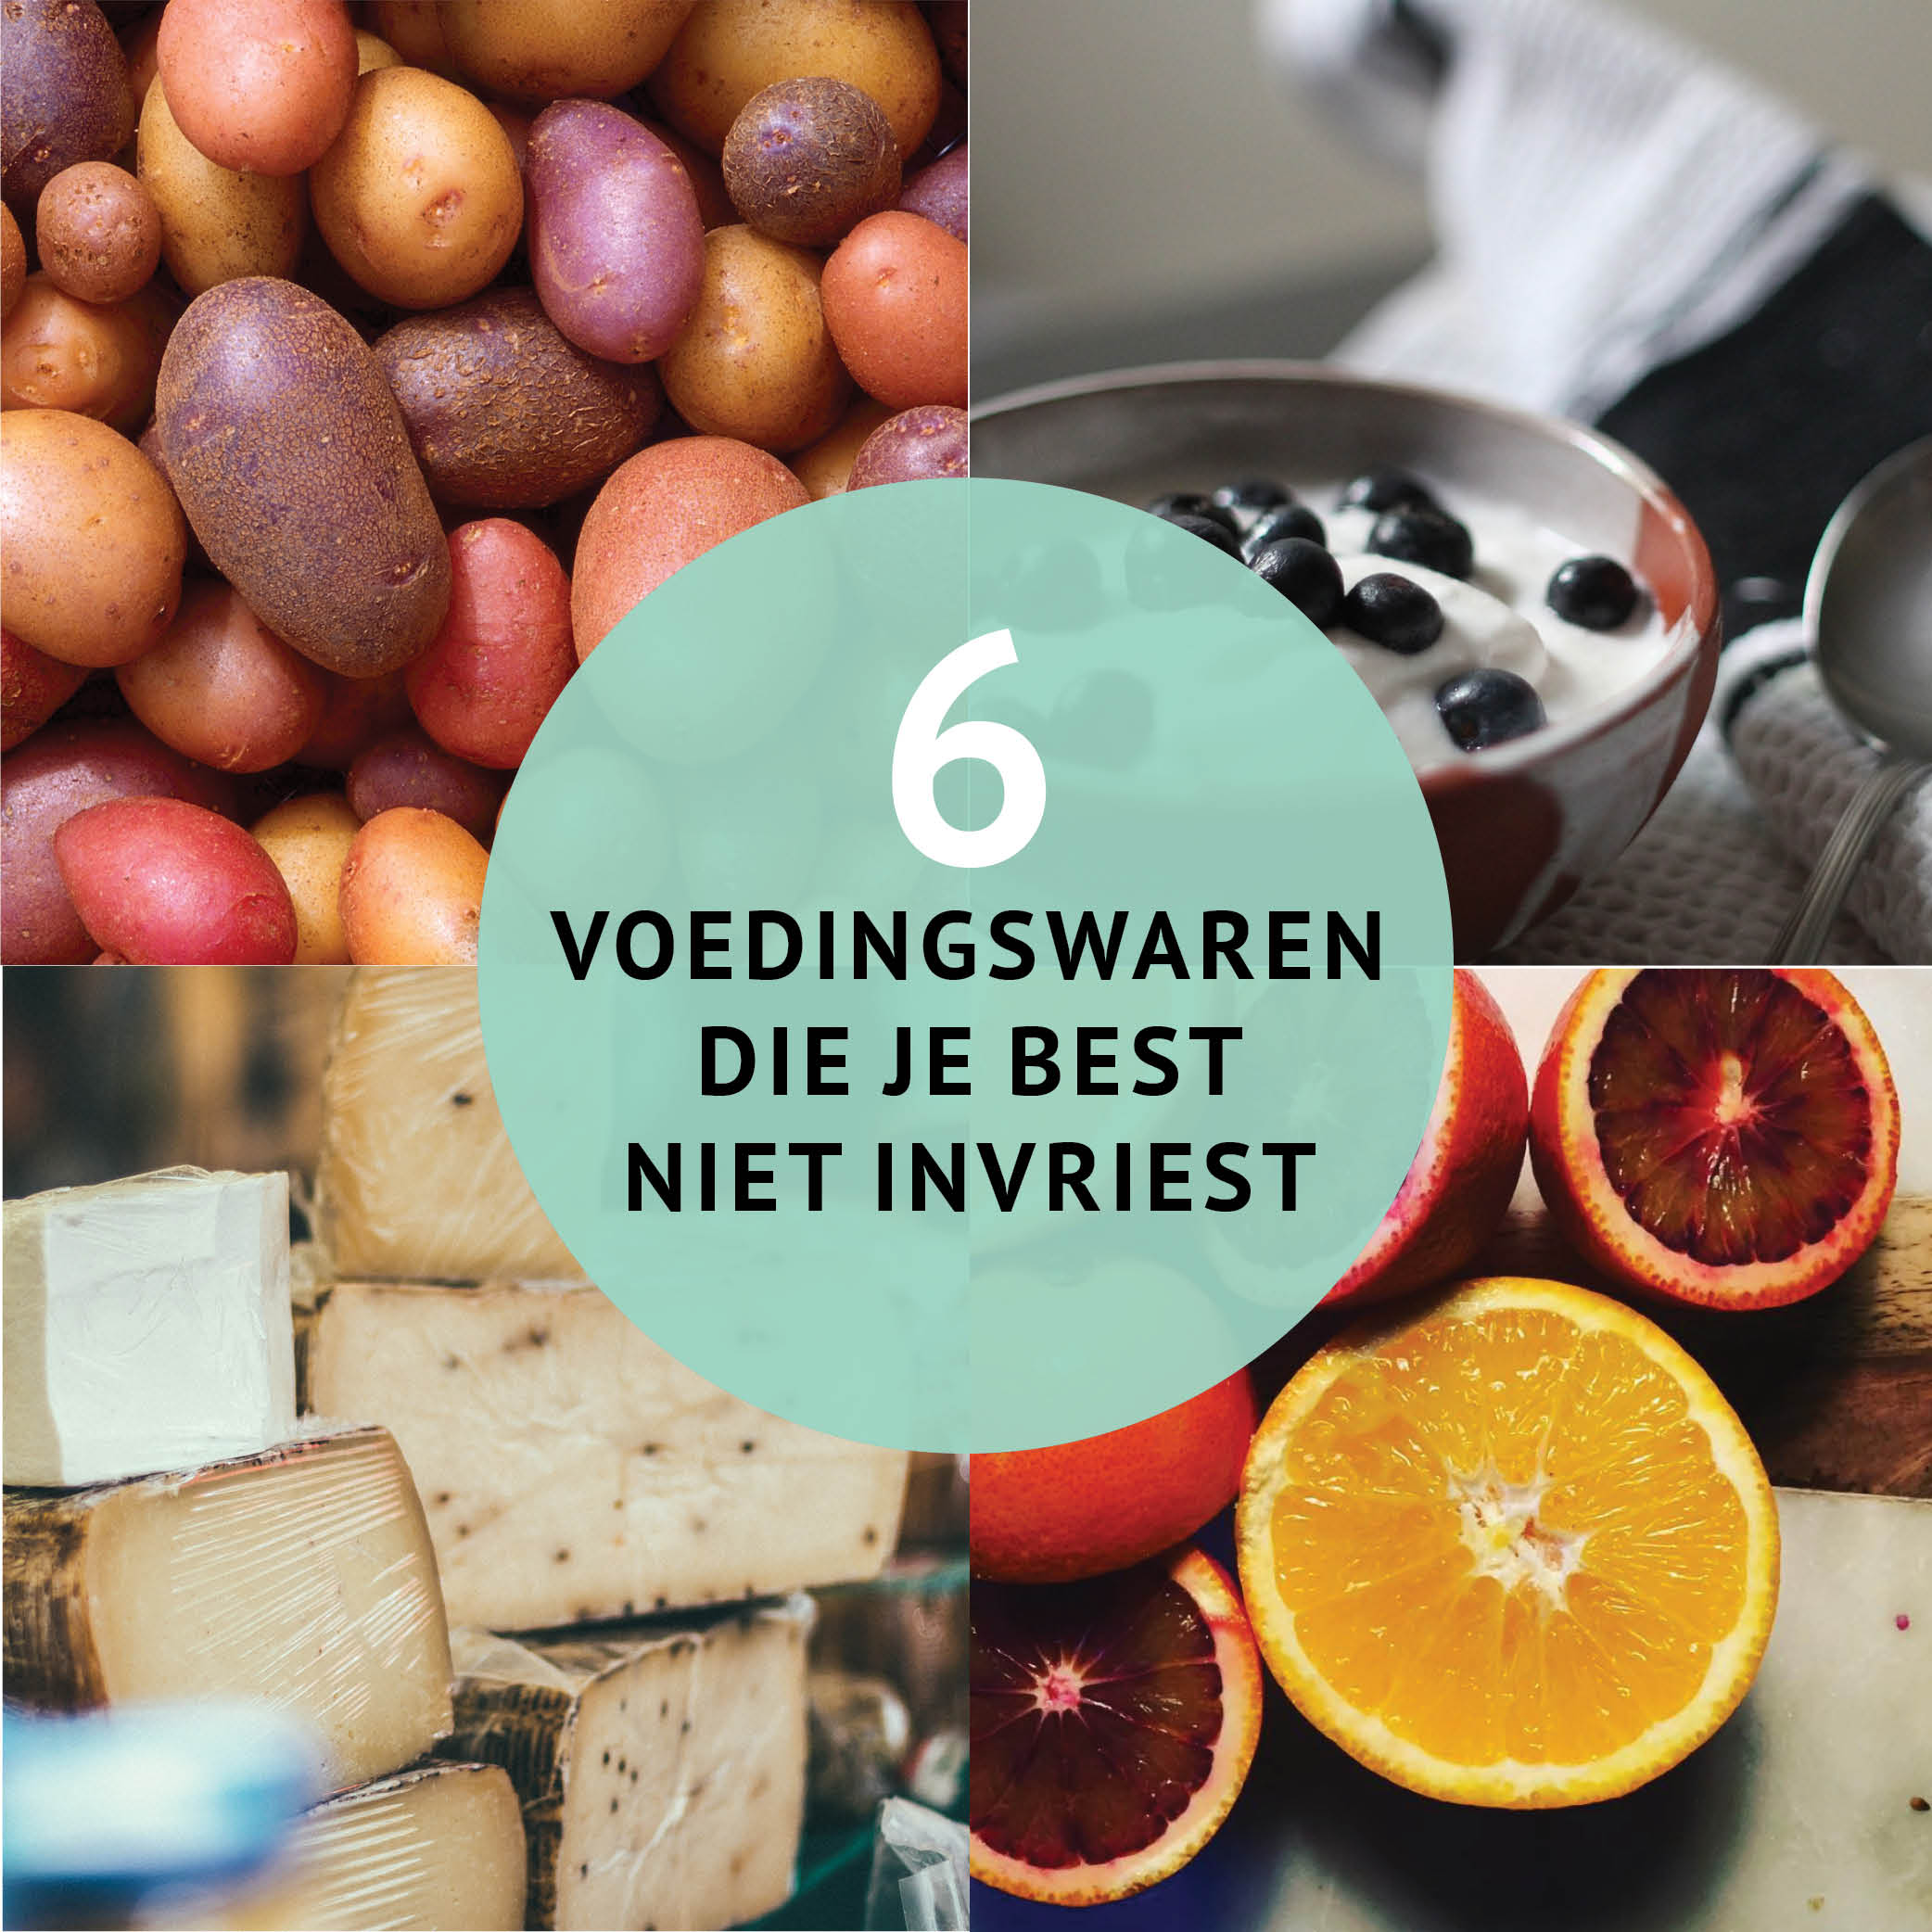 Empty the Fridge - 6 voedingswaren die je best niet invriest